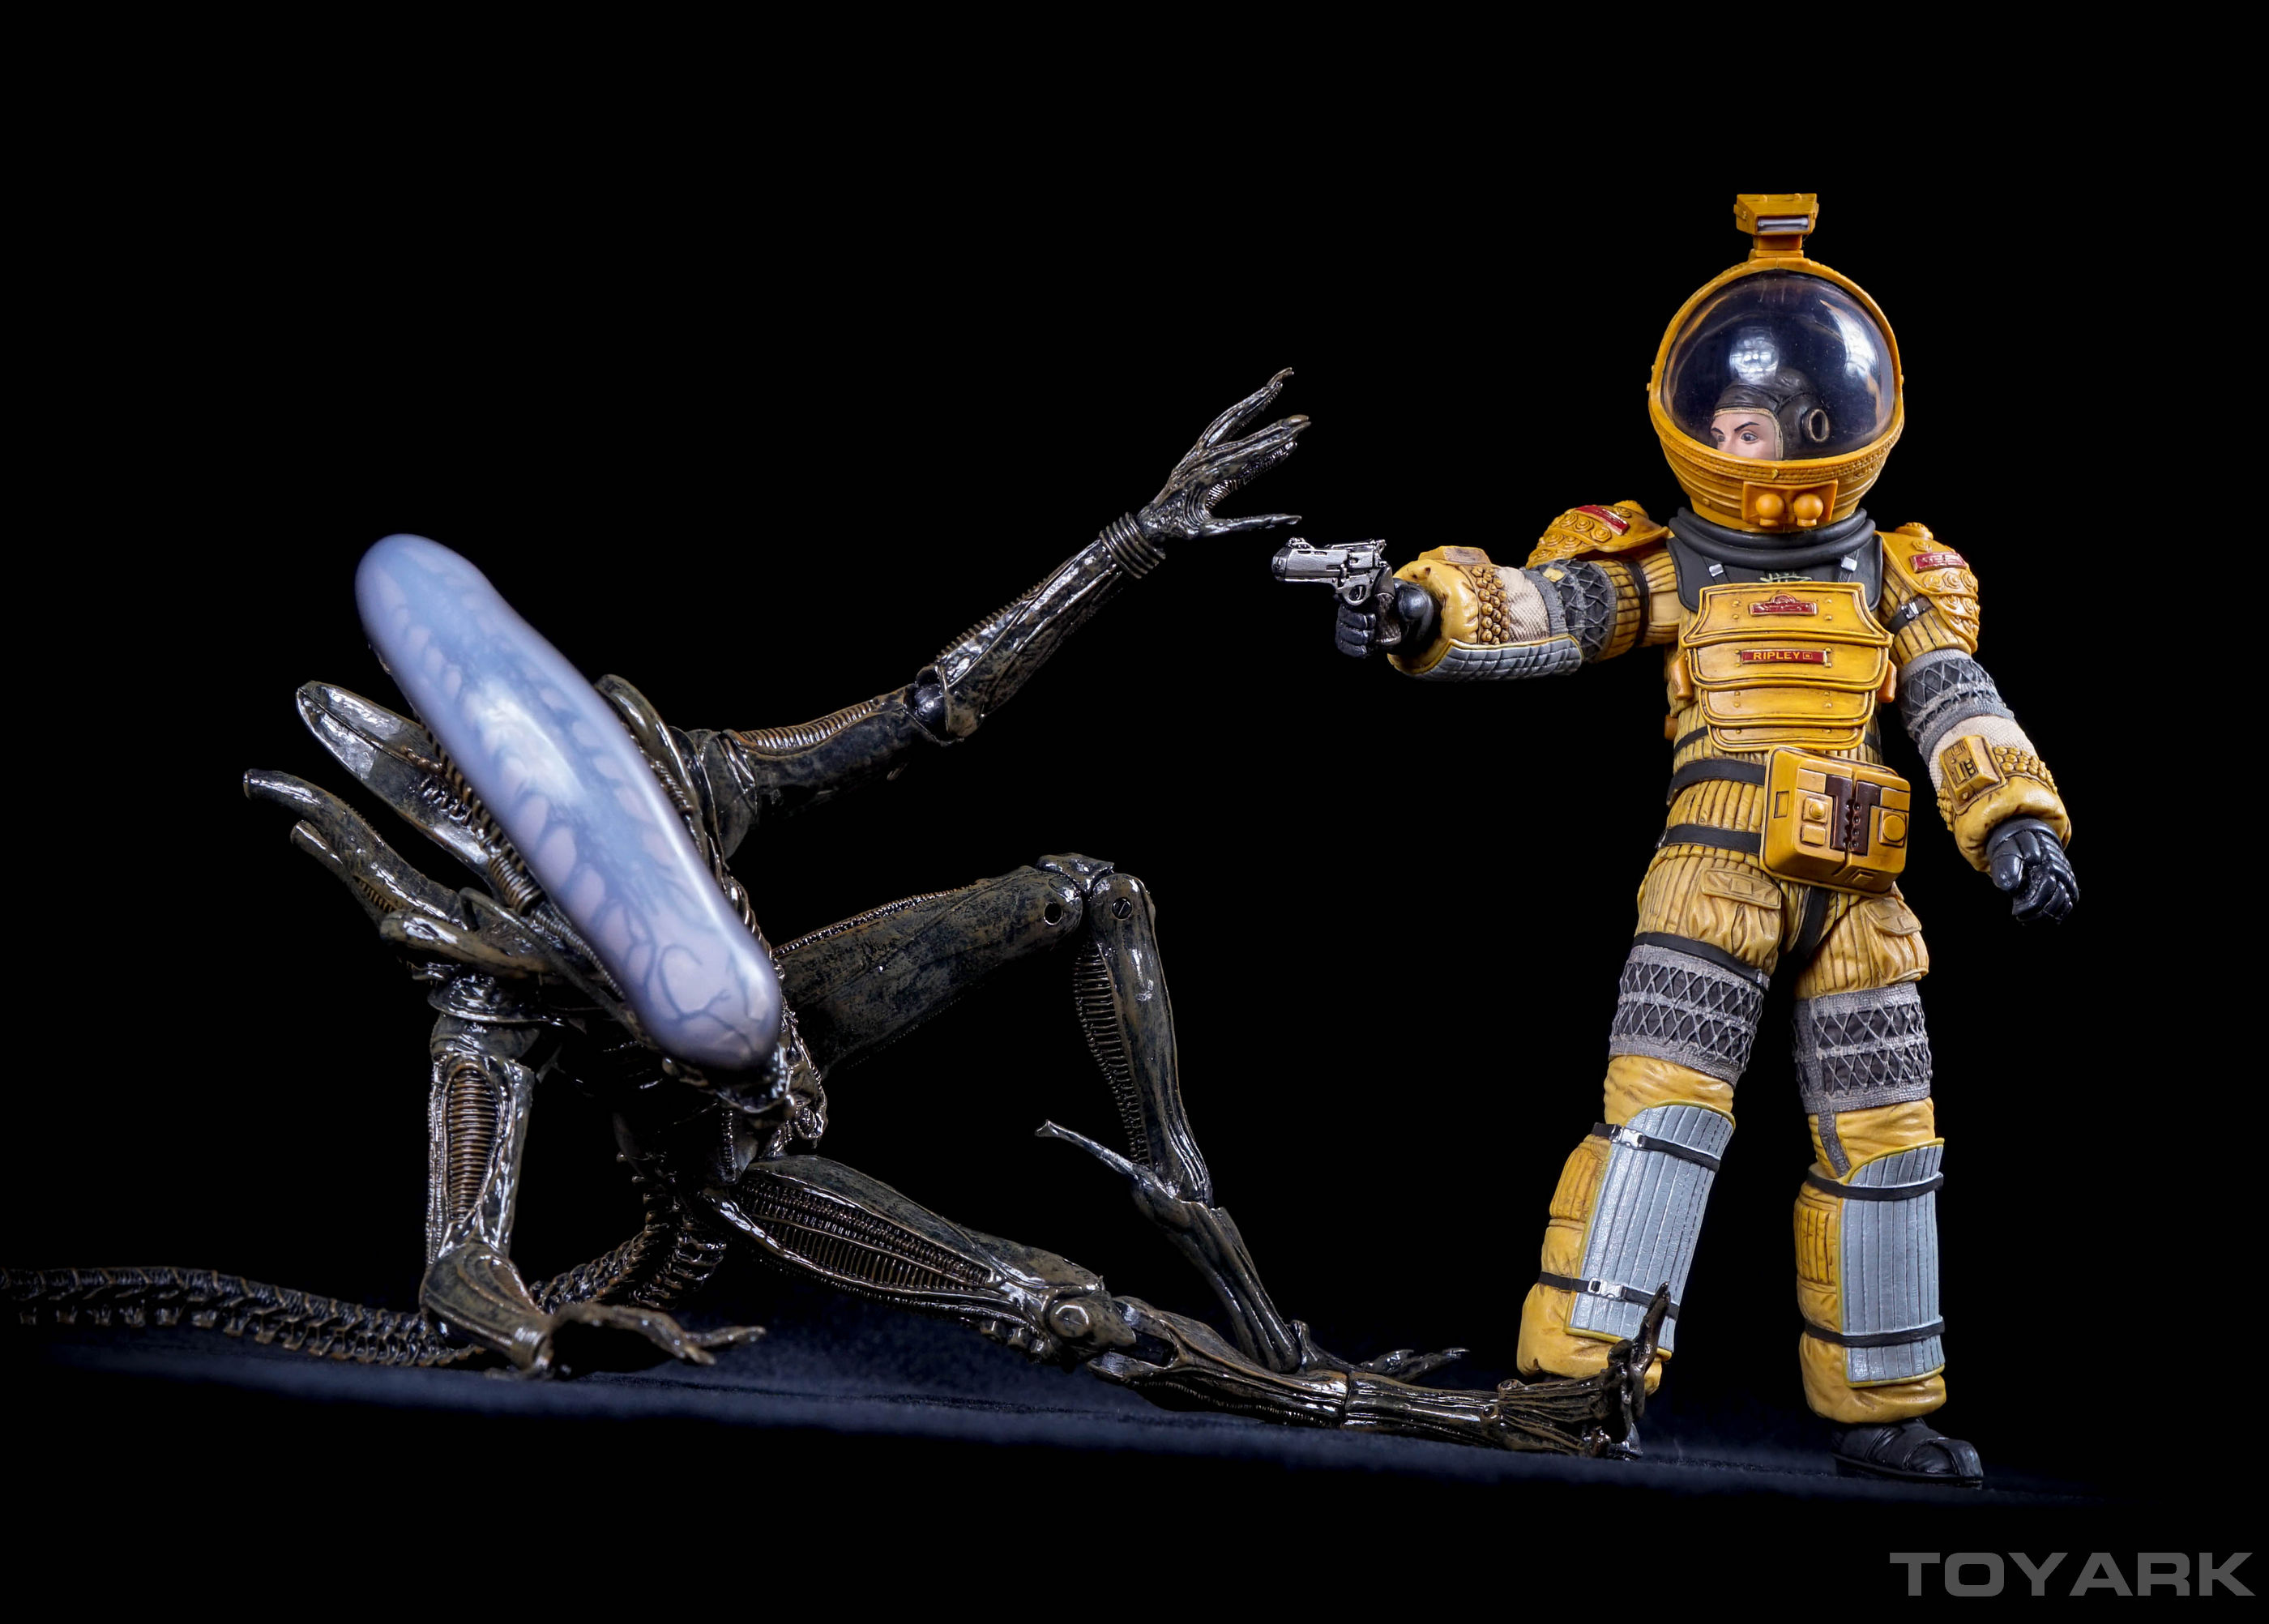 http://news.toyark.com/wp-content/uploads/sites/4/2015/12/NECA-Alien-Isolation-075.jpg